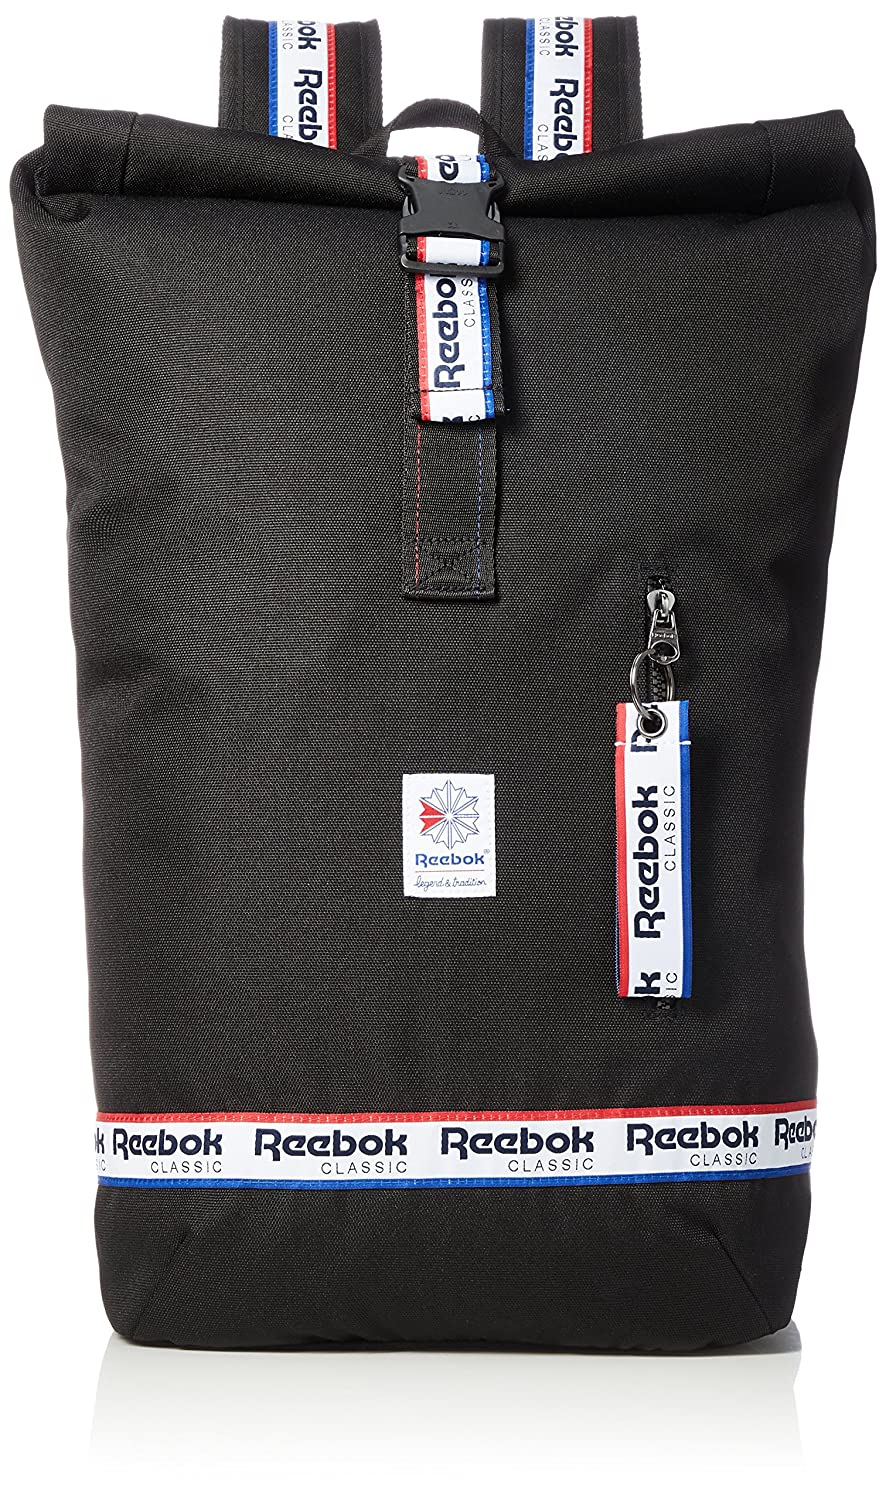 Reebok DH3565 Cl Graphic Taping BP Mochila Tipo Casual, 25 cm, 25 litros, Negro: Amazon.es: Equipaje